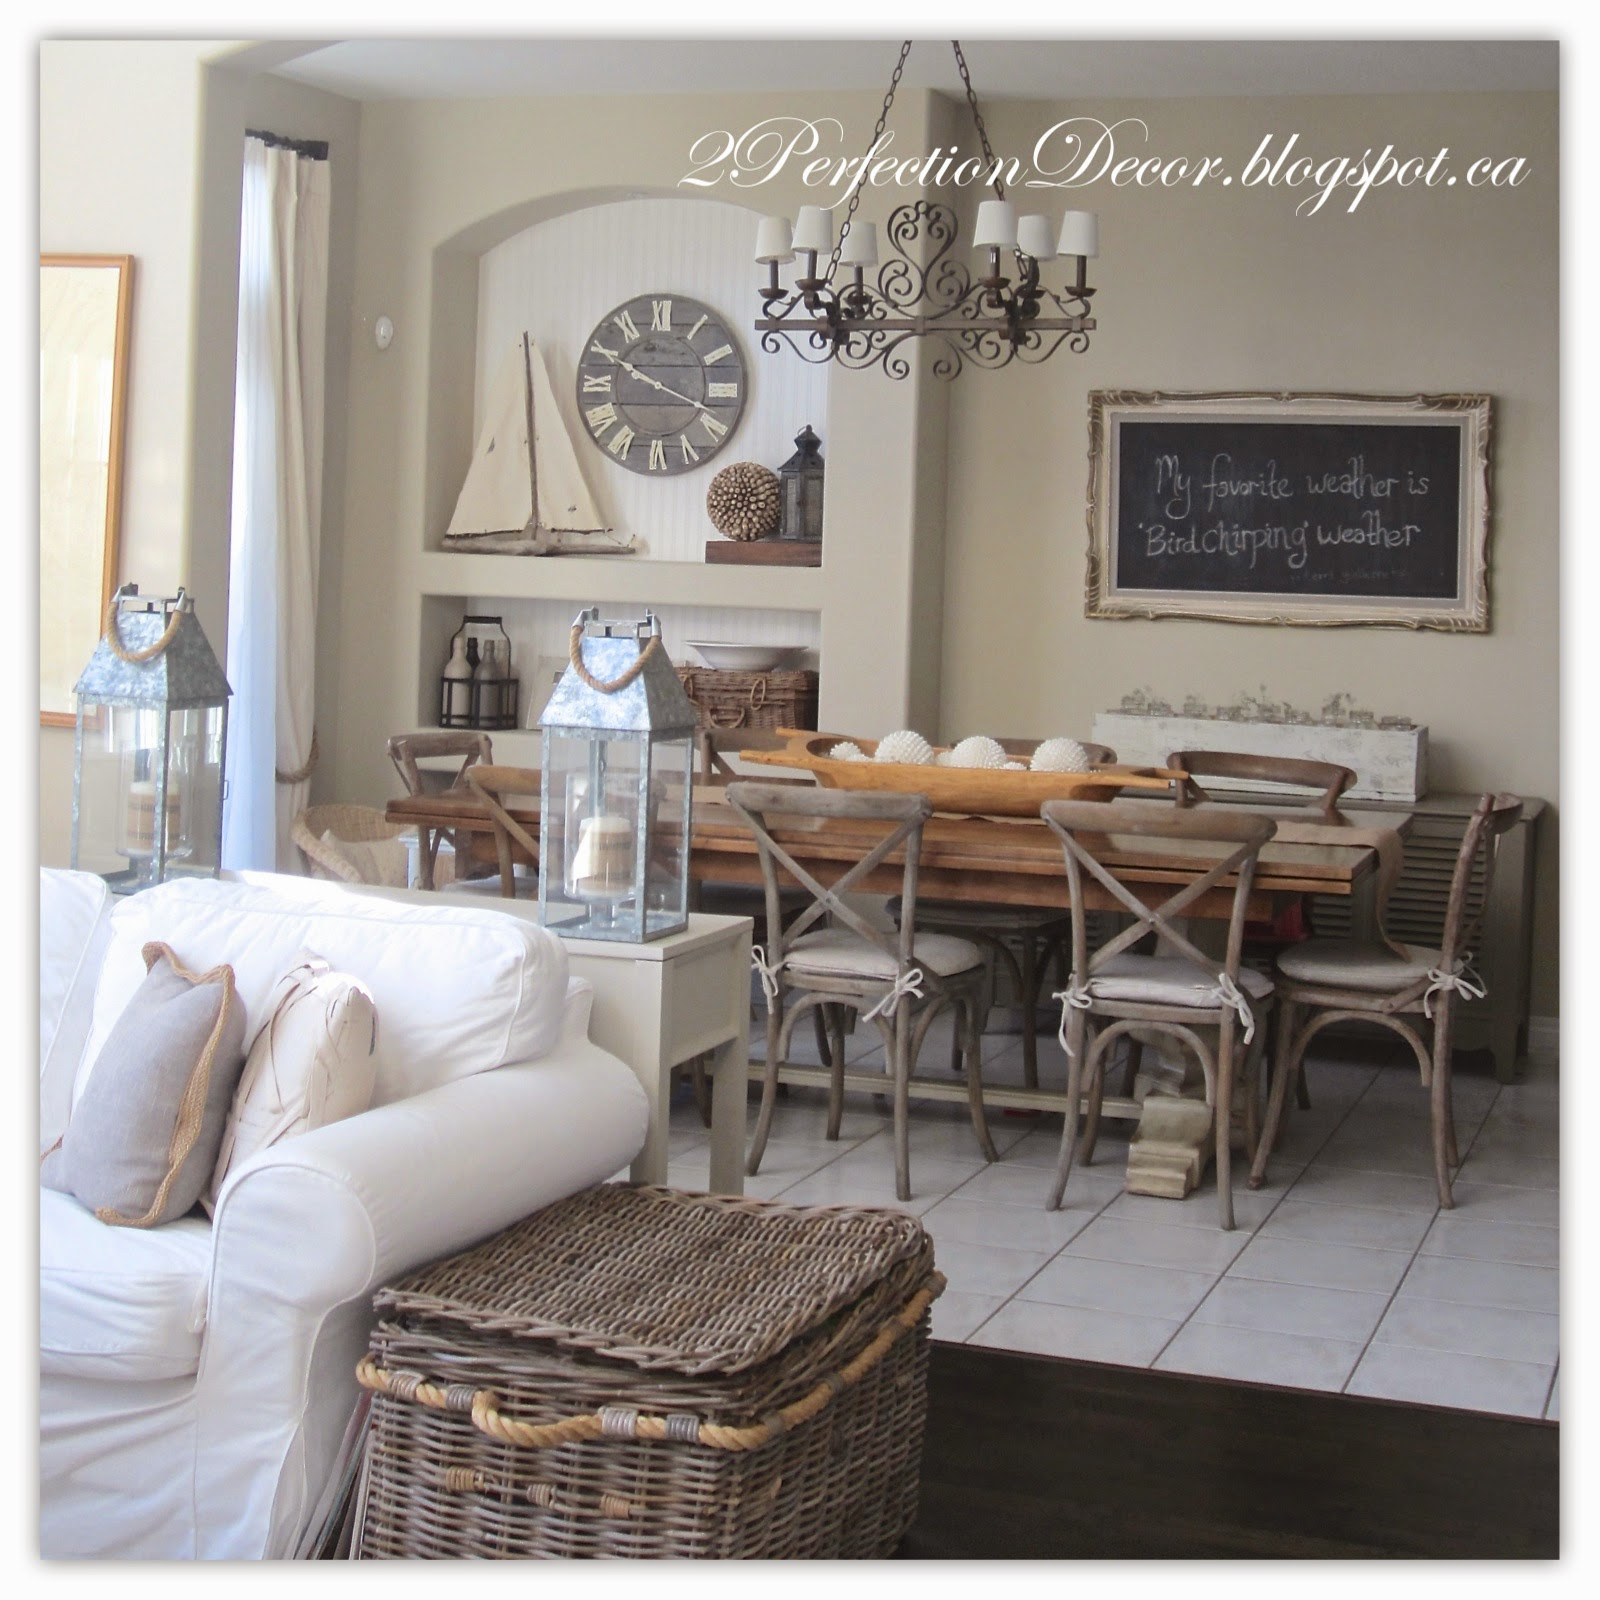 Adventures In Decorating Our 2015 Fall Kitchen: 2Perfection Decor: Kitchen Eating Area Decor